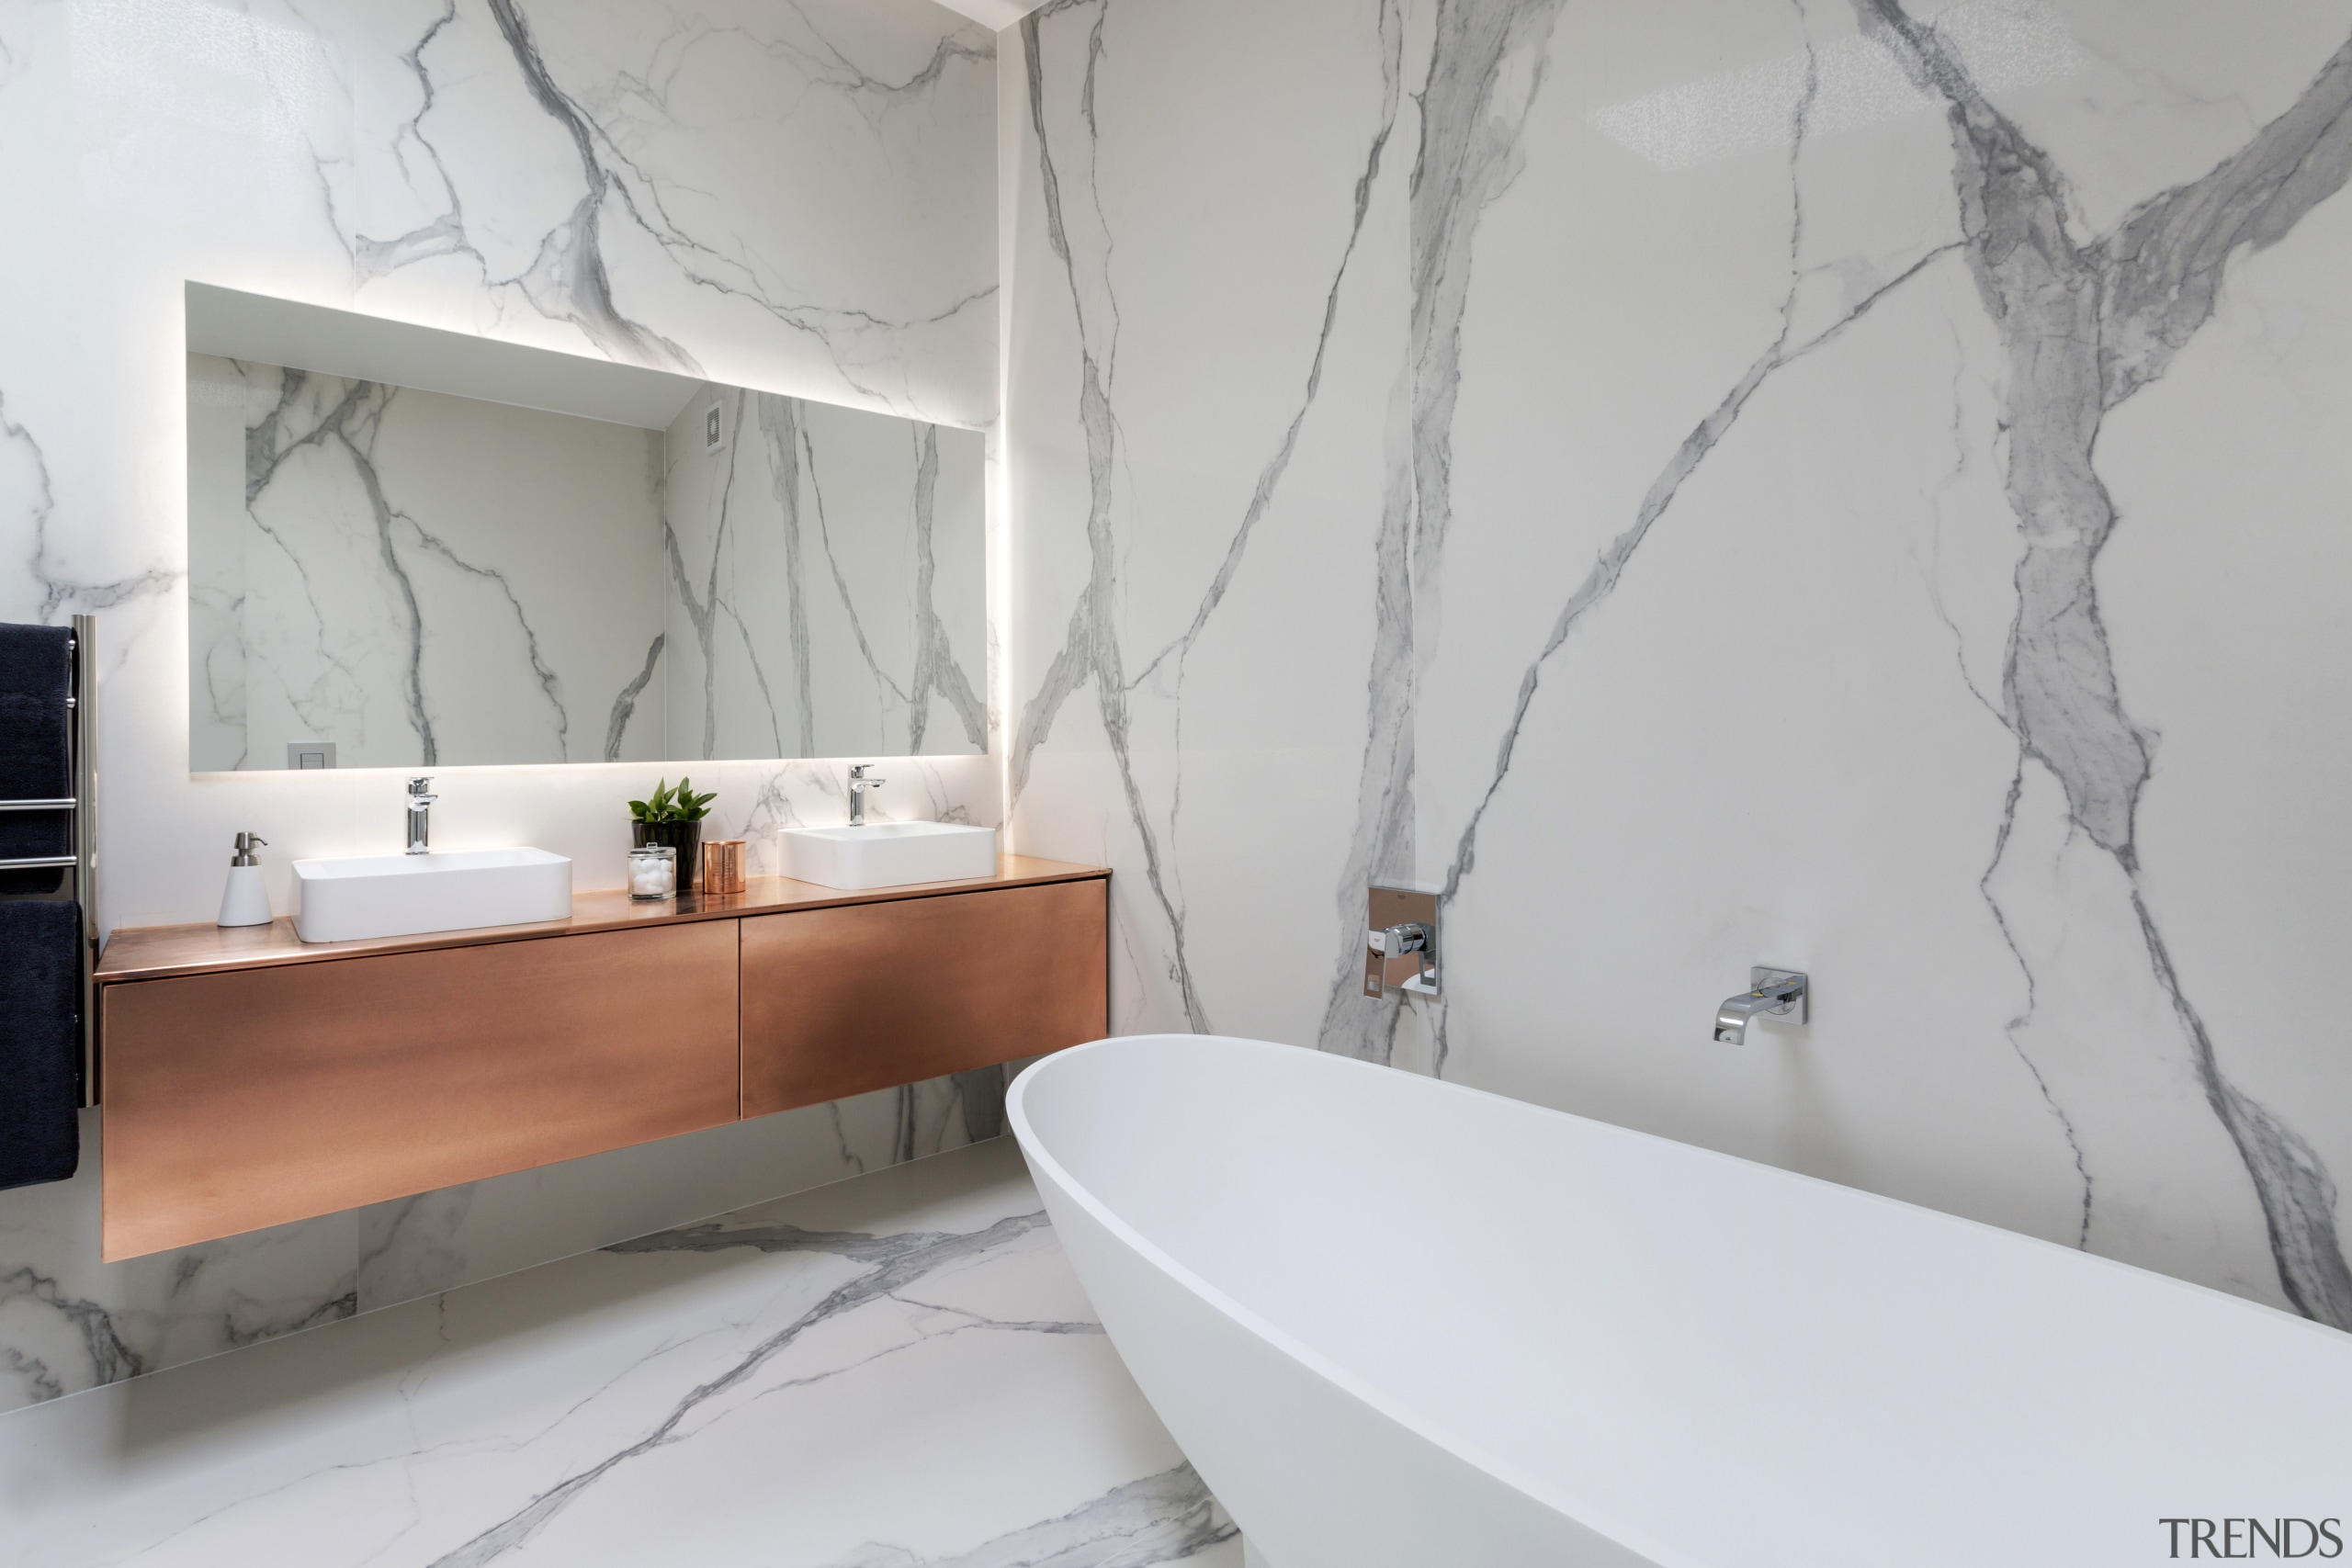 The upmarket aesthetic in this bathroom is achieved architecture, bathroom, floor, home, interior design, product design, room, tap, tile, wall, gray